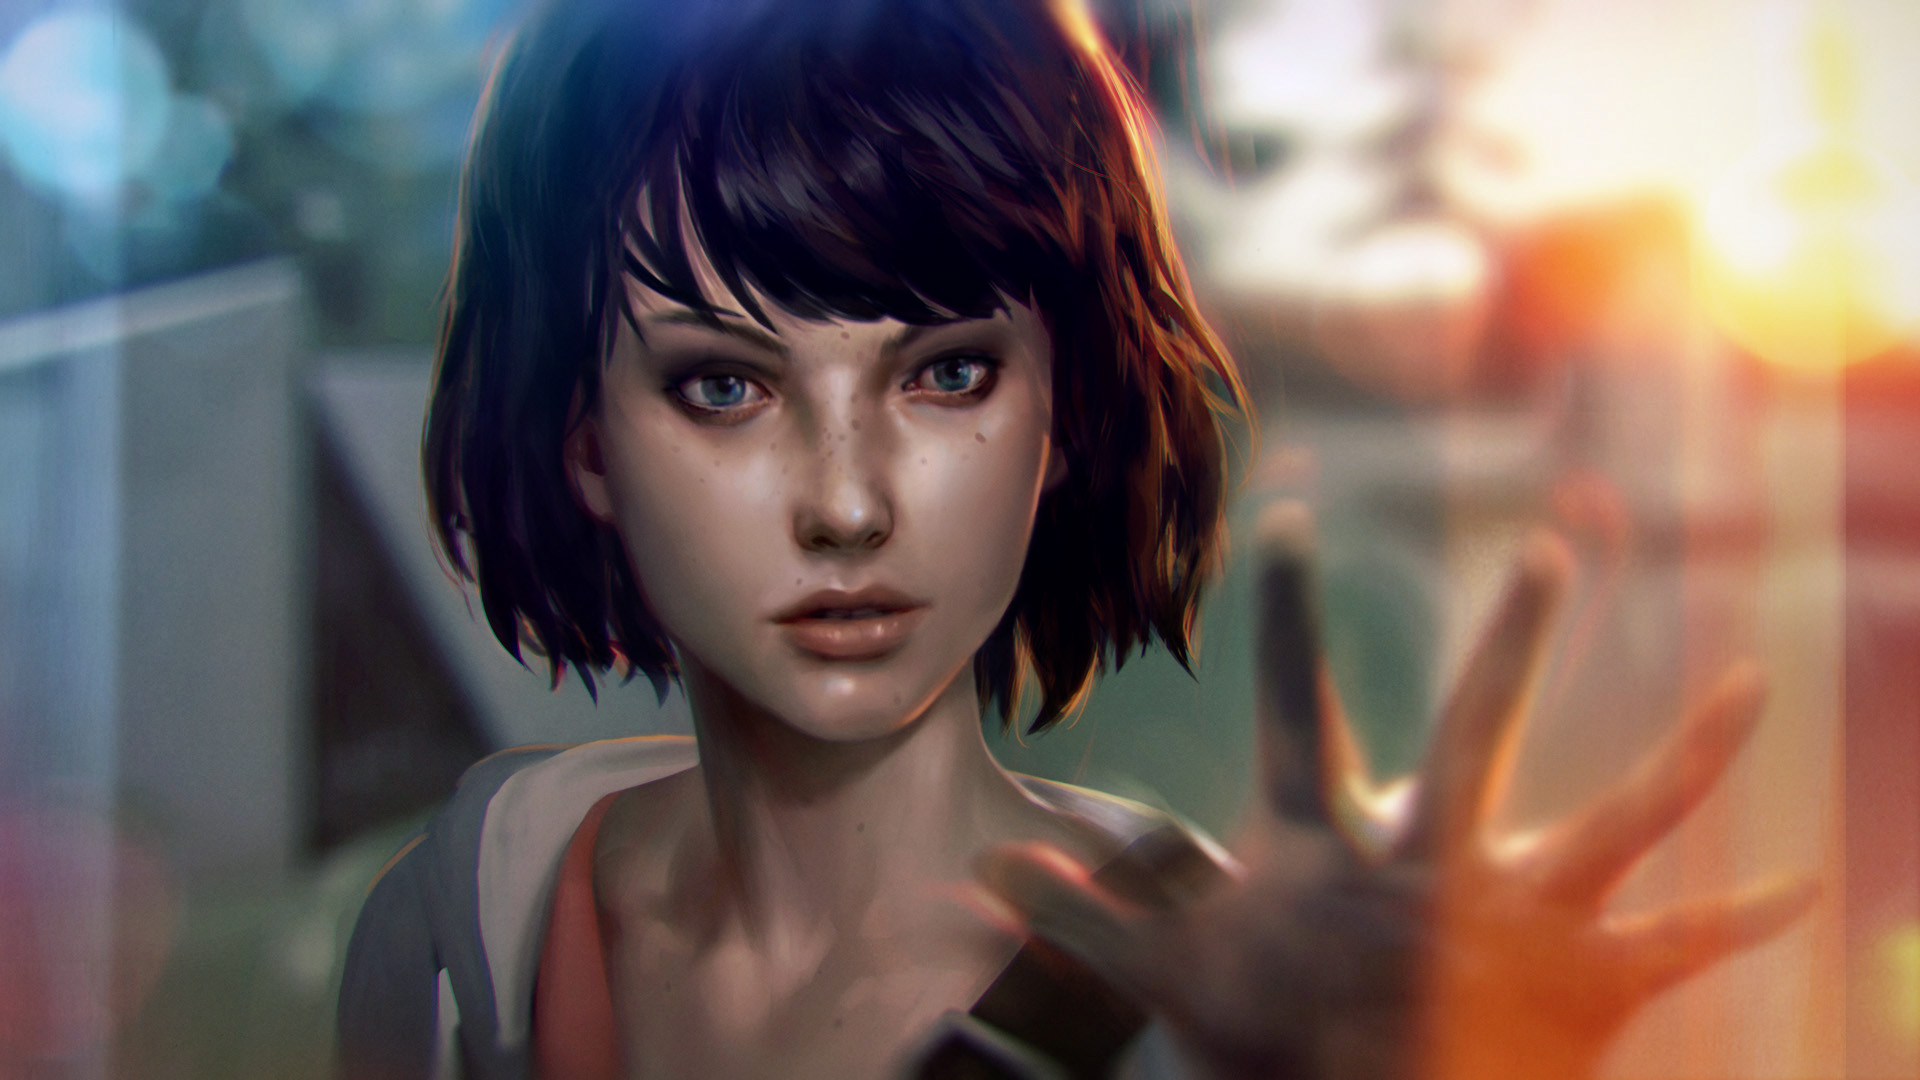 Life Is Strange - and artwork is good